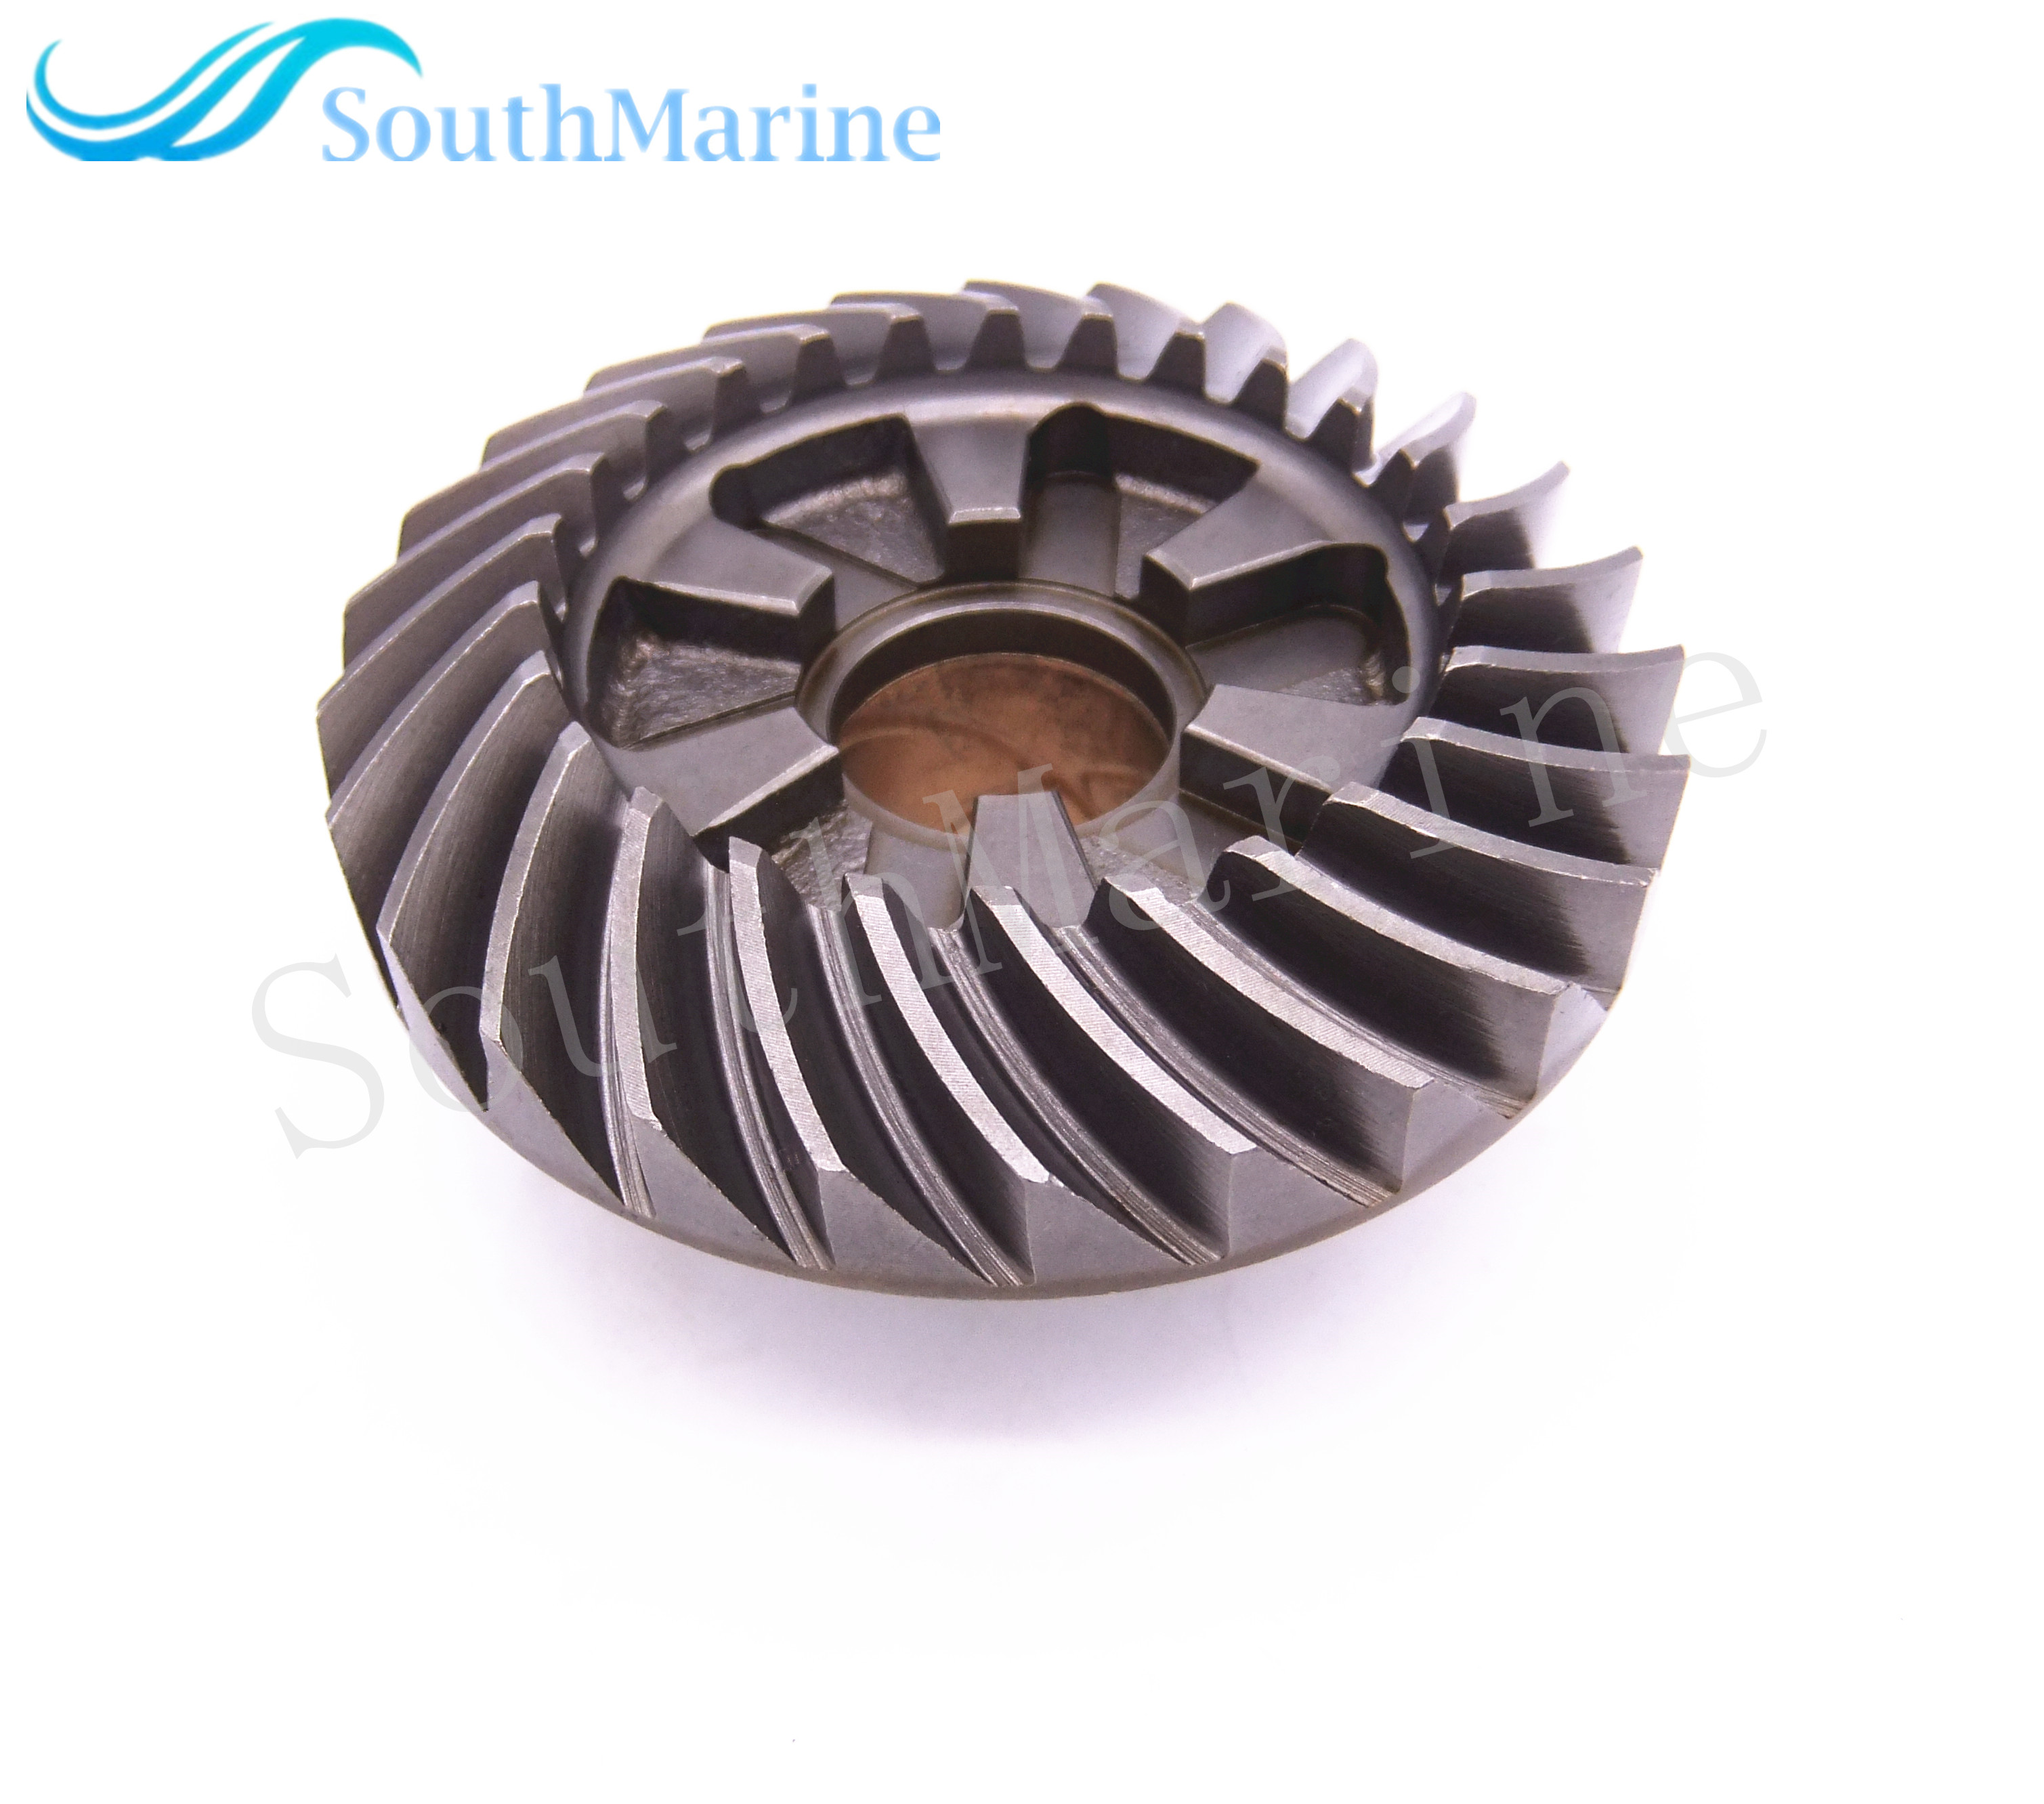 Boat Motor T40-04020000 Forward Gear for Parsun Outboard Engine 2-Stroke T40 Free Shipping